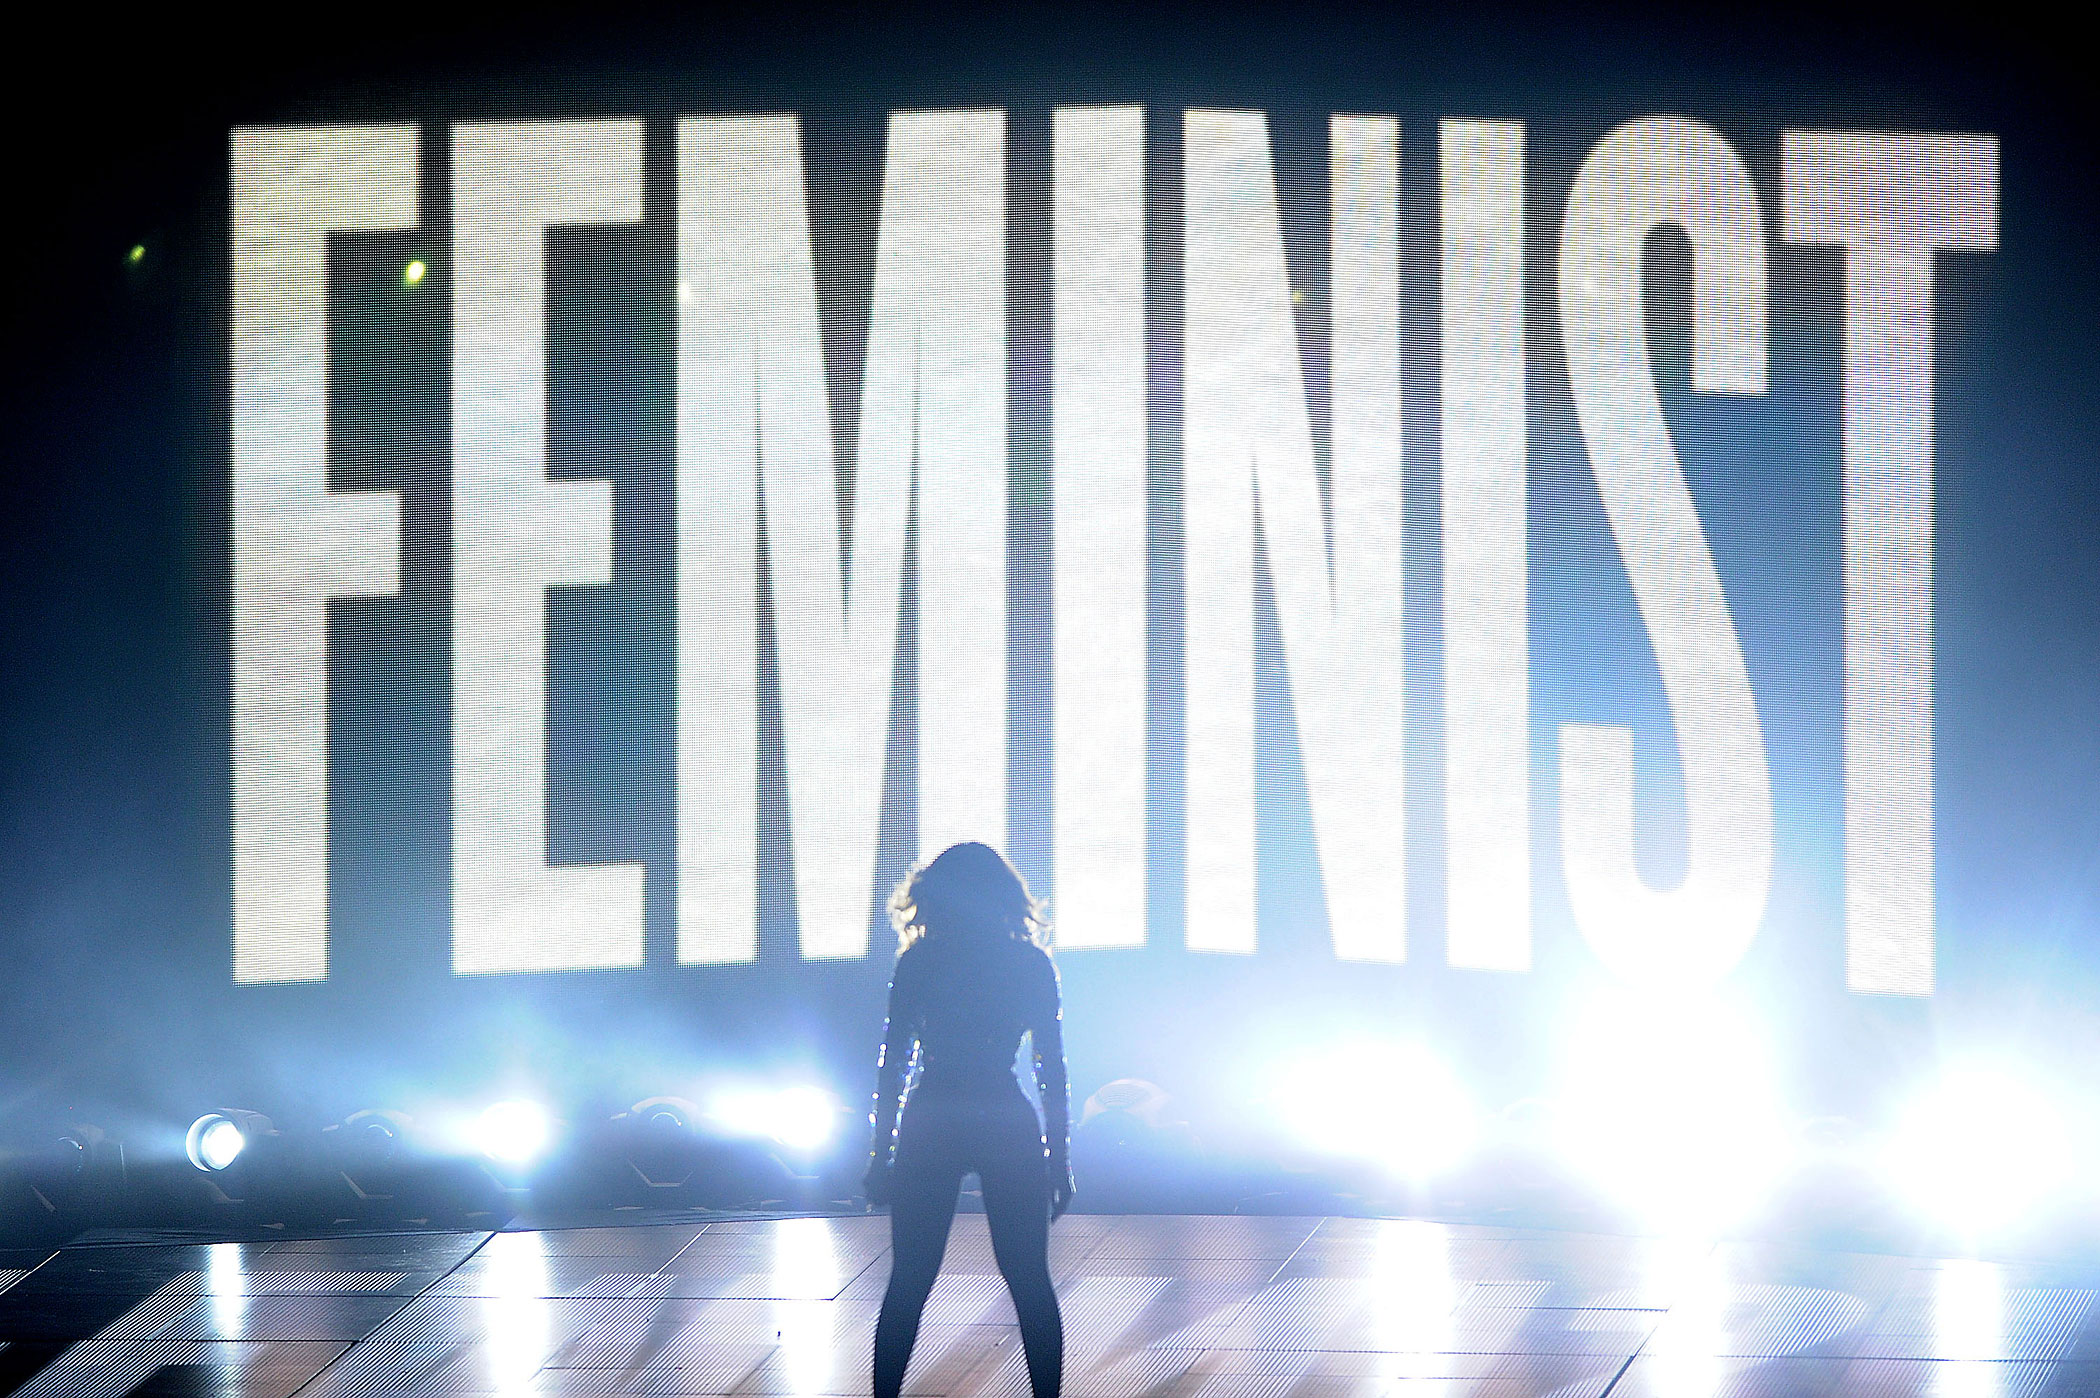 Beyonce performs onstage at the 2014 MTV Video Music Awards at The Forum on August 24, 2014 in Inglewood, California.